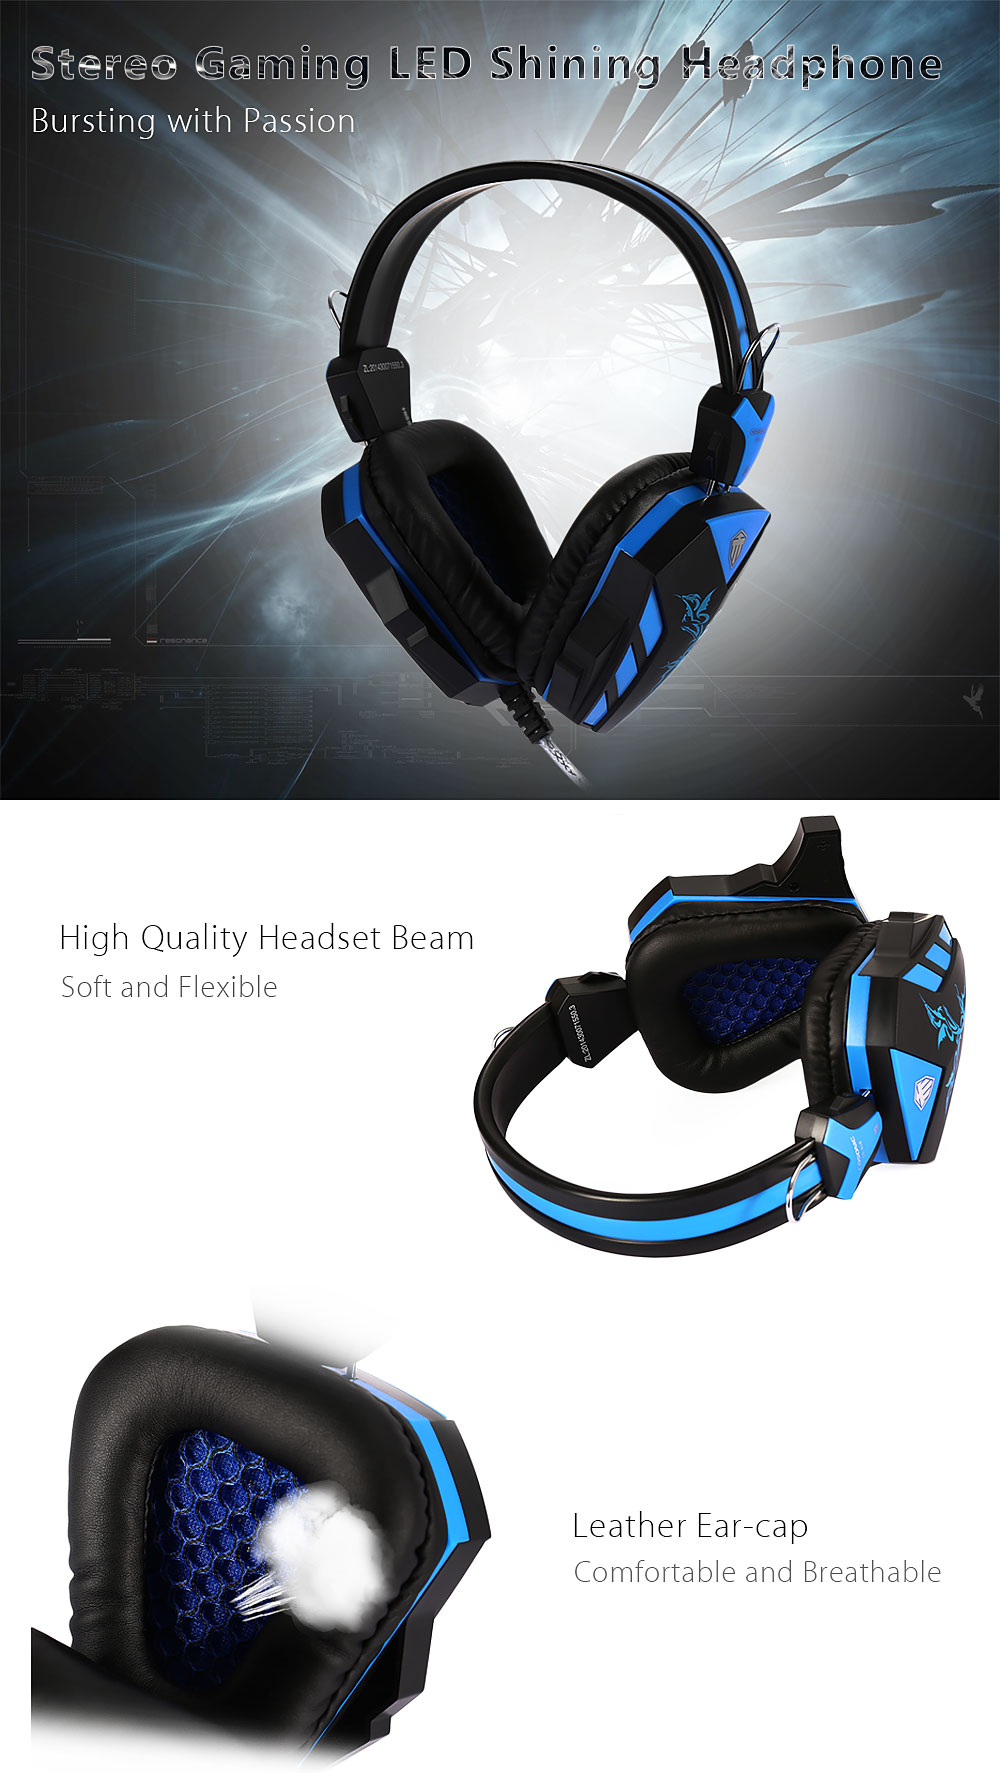 COSONIC CD - 618 Stereo Gaming LED Shining Headphone USB Port